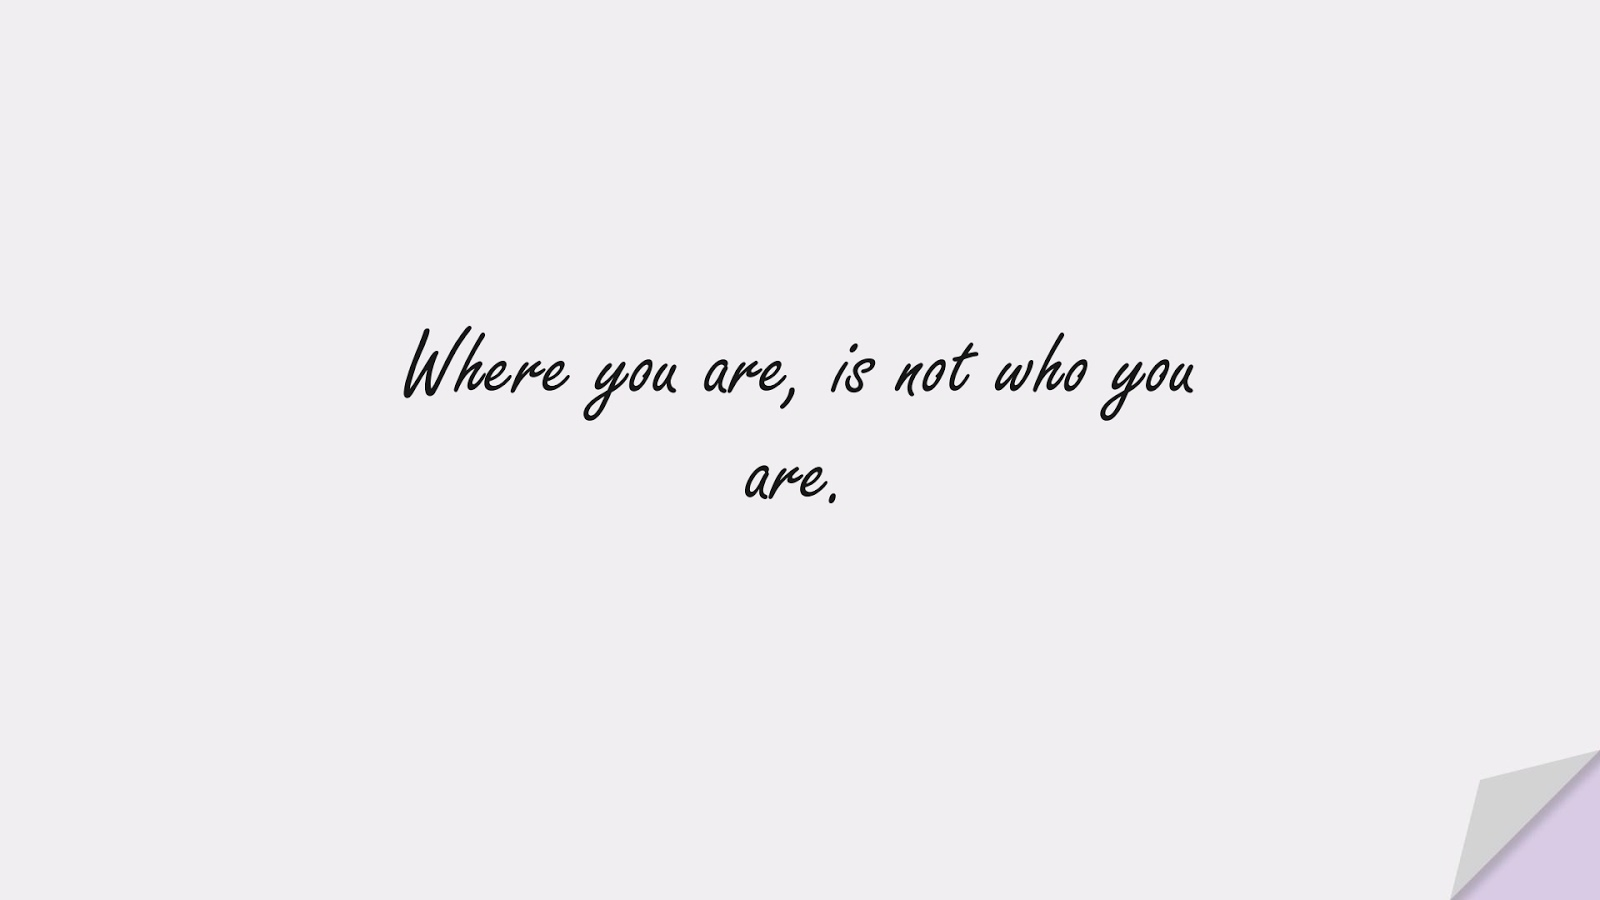 Where you are, is not who you are.FALSE